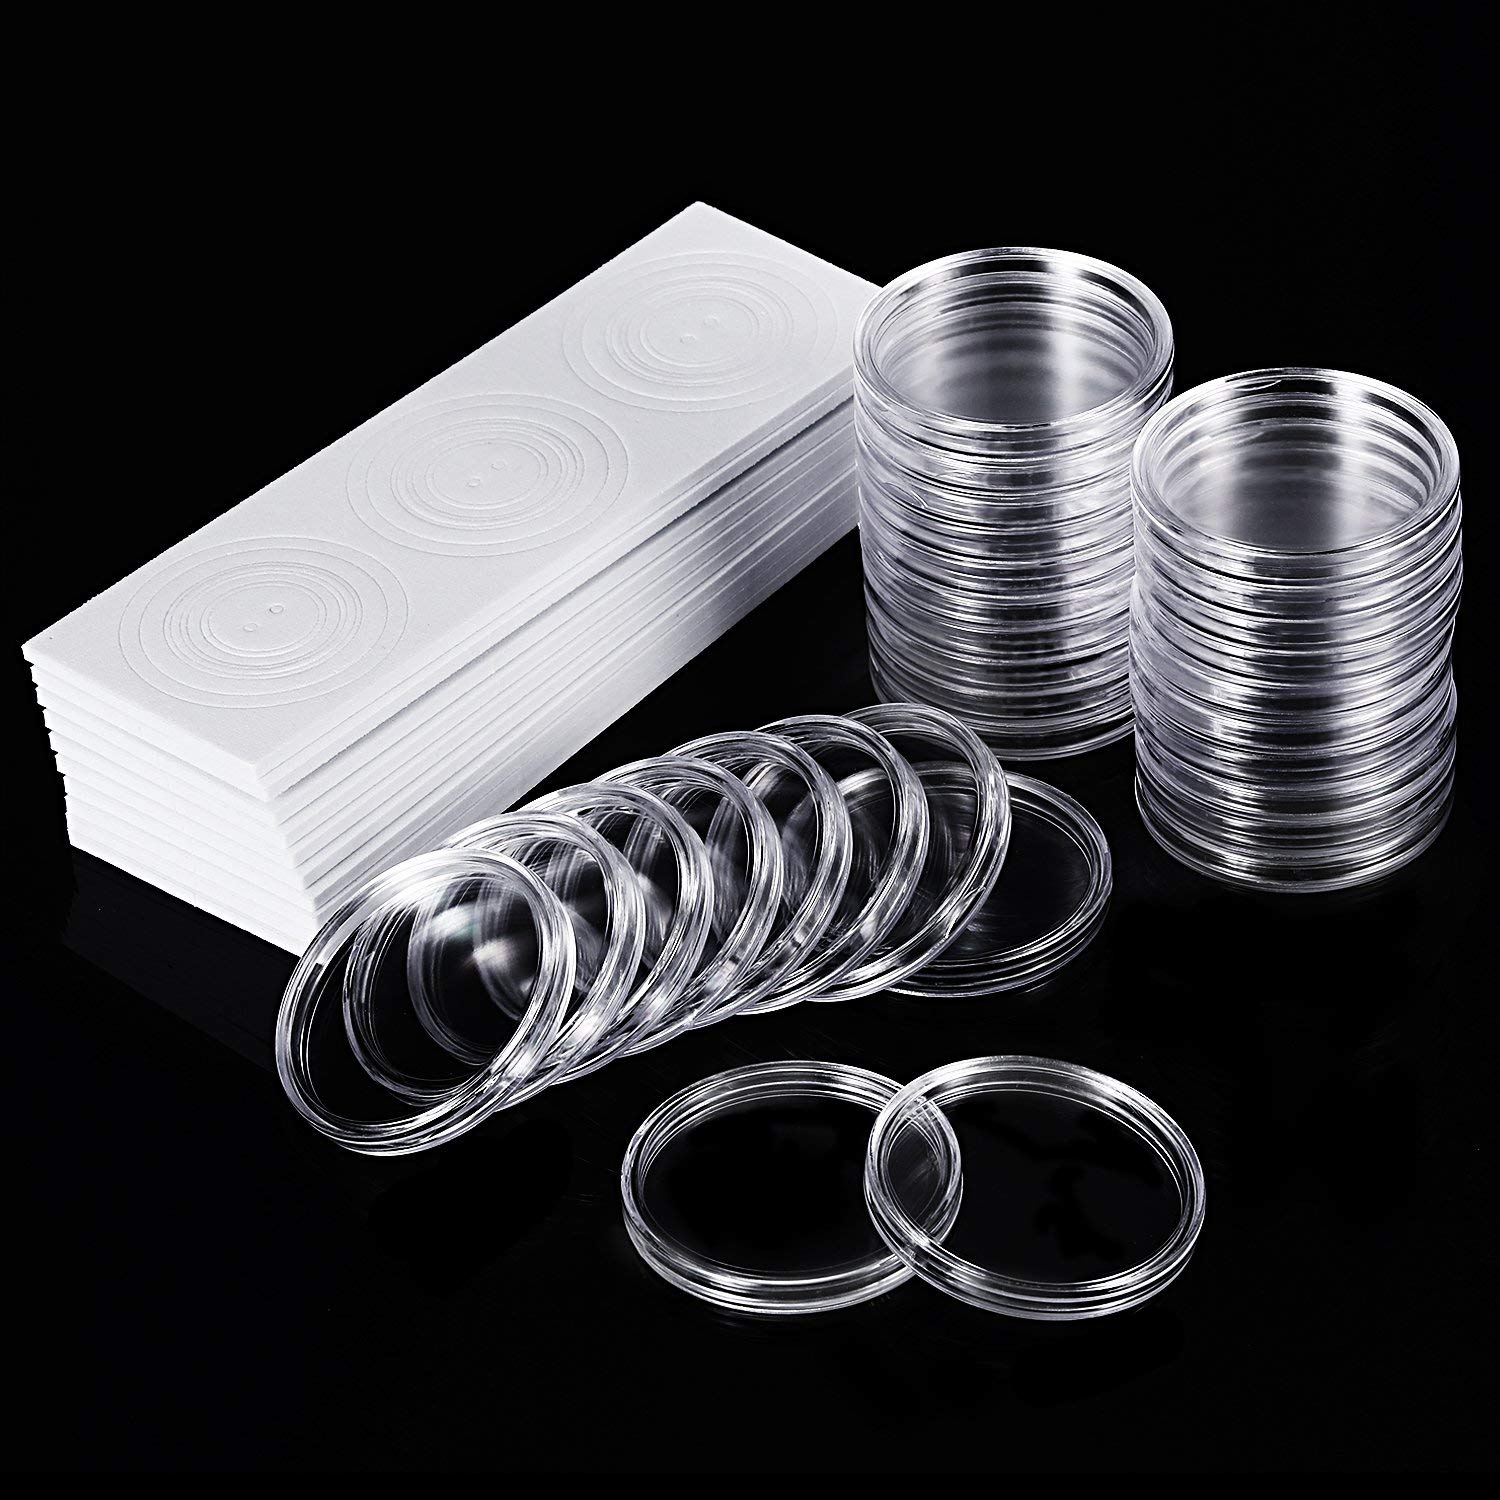 Pack of 1000 Round Plastic Coin Capsules Storage Holder Case Collection 19mm